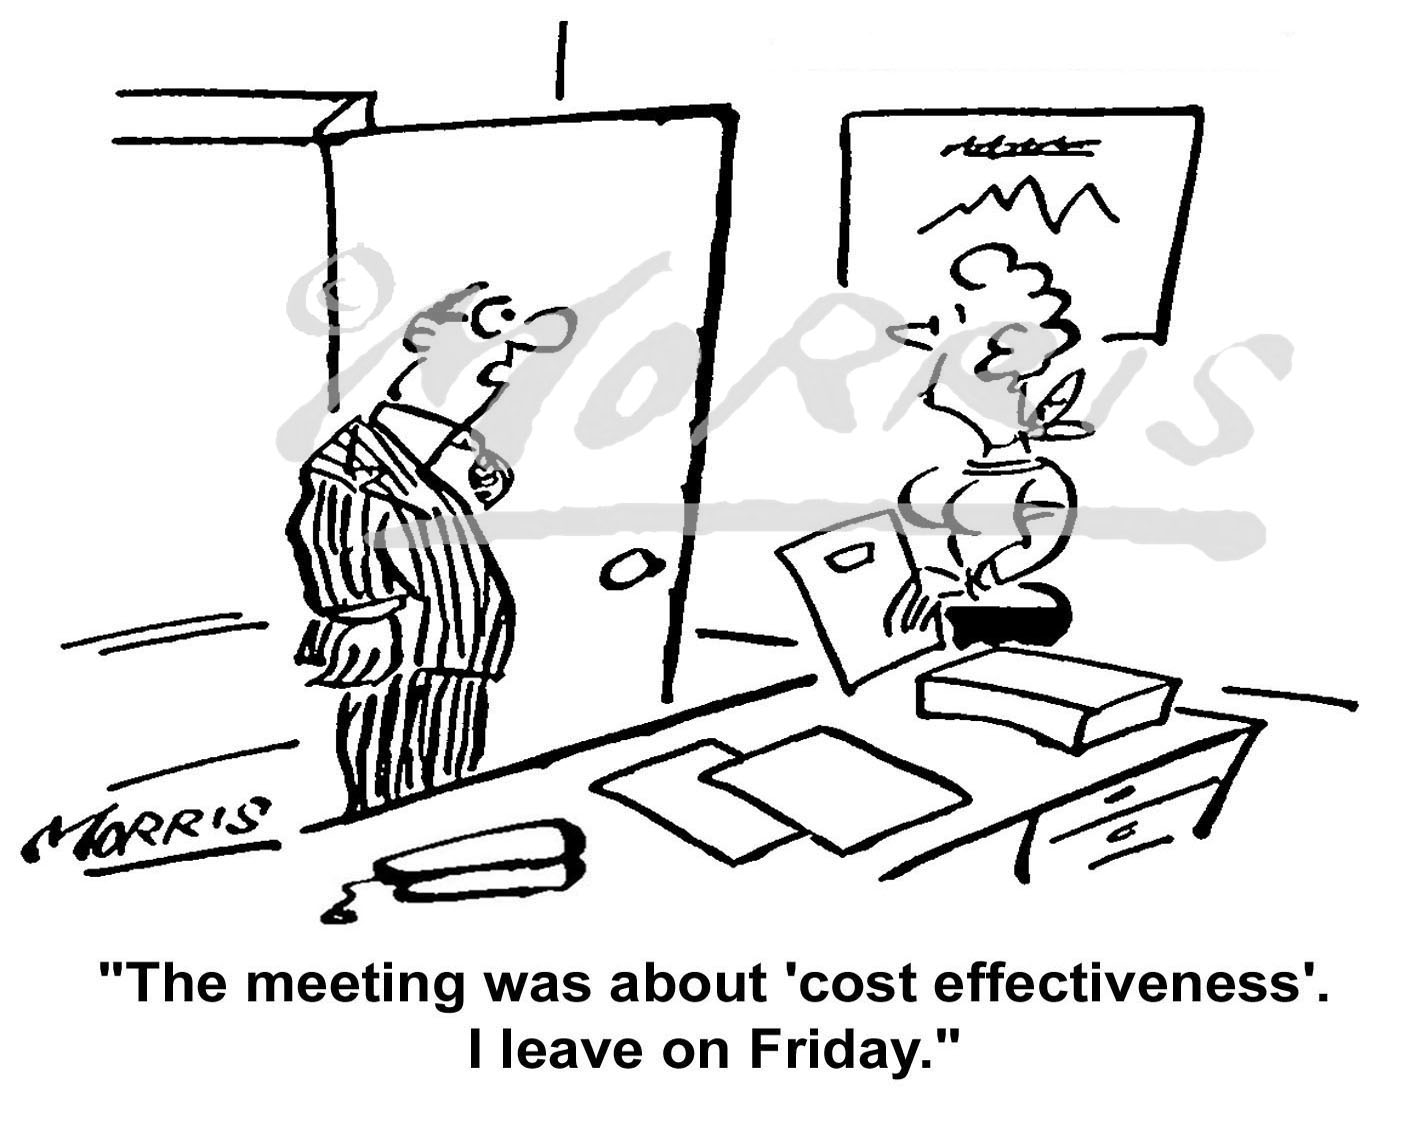 Company cartoon Ref: 1242bw